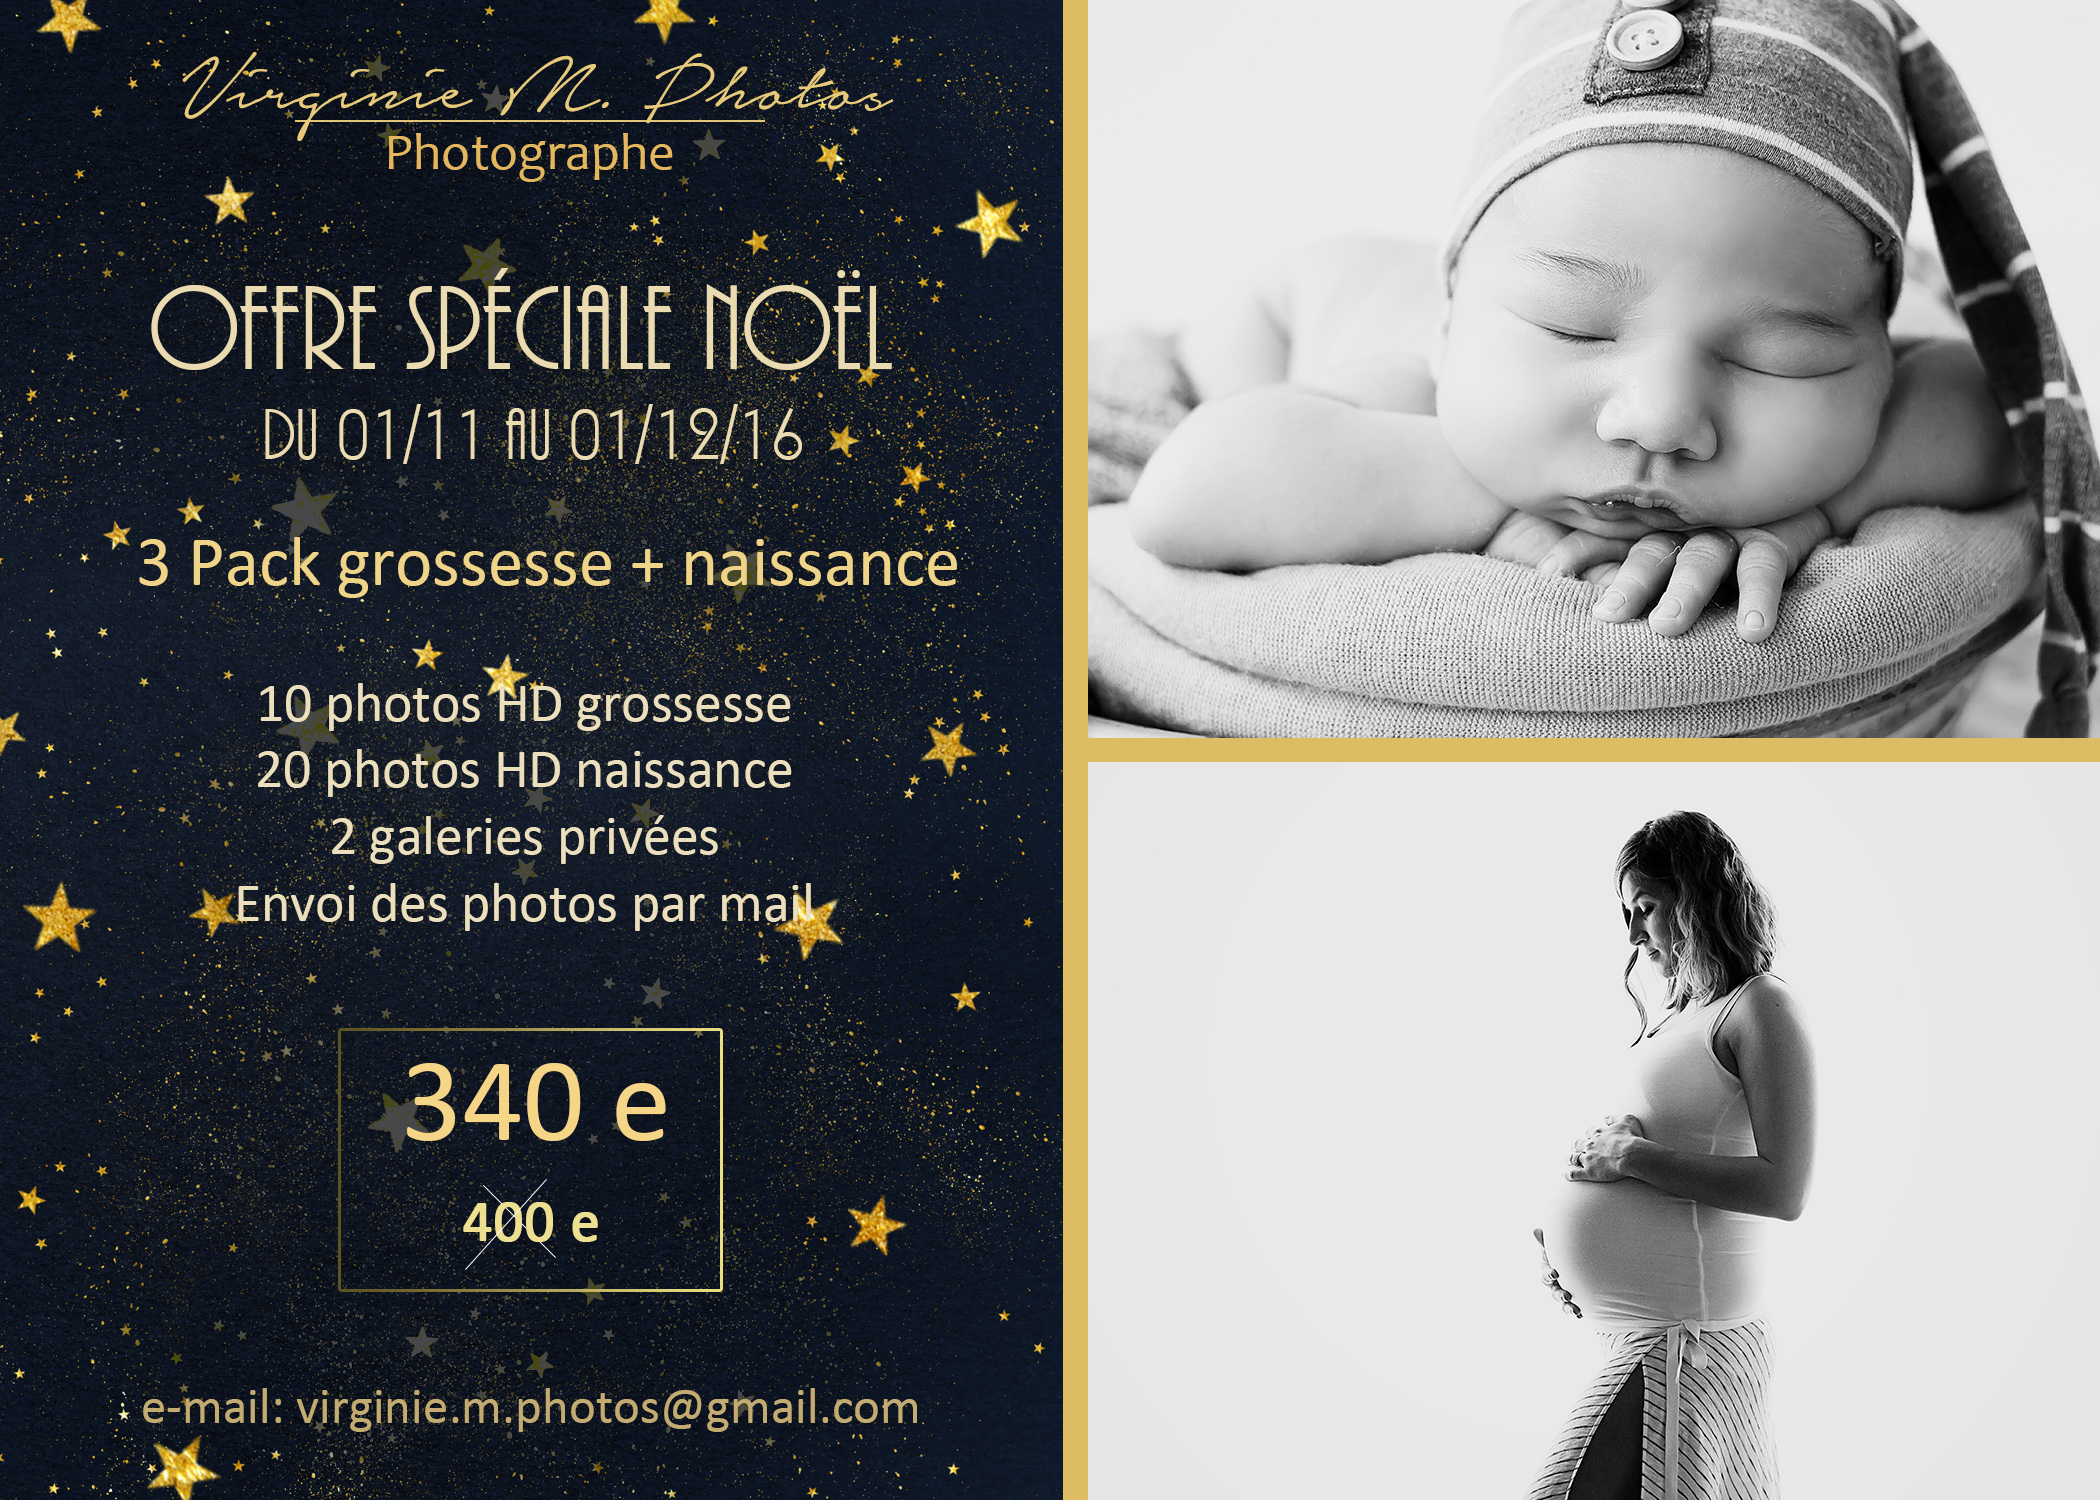 offre-de-noel-virginie-m-photos